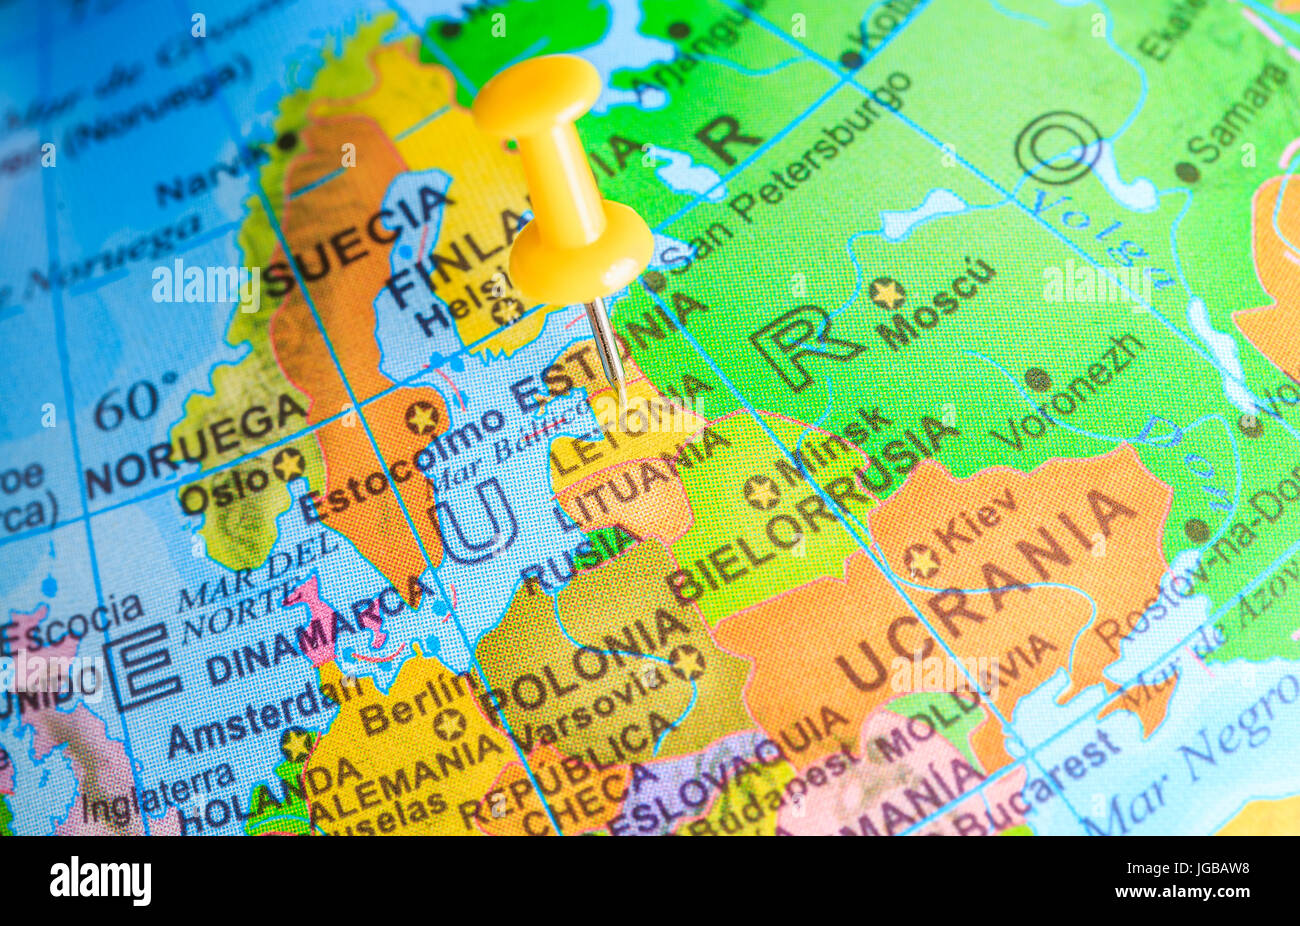 Letonia pinned on a map of Europe - Stock Image